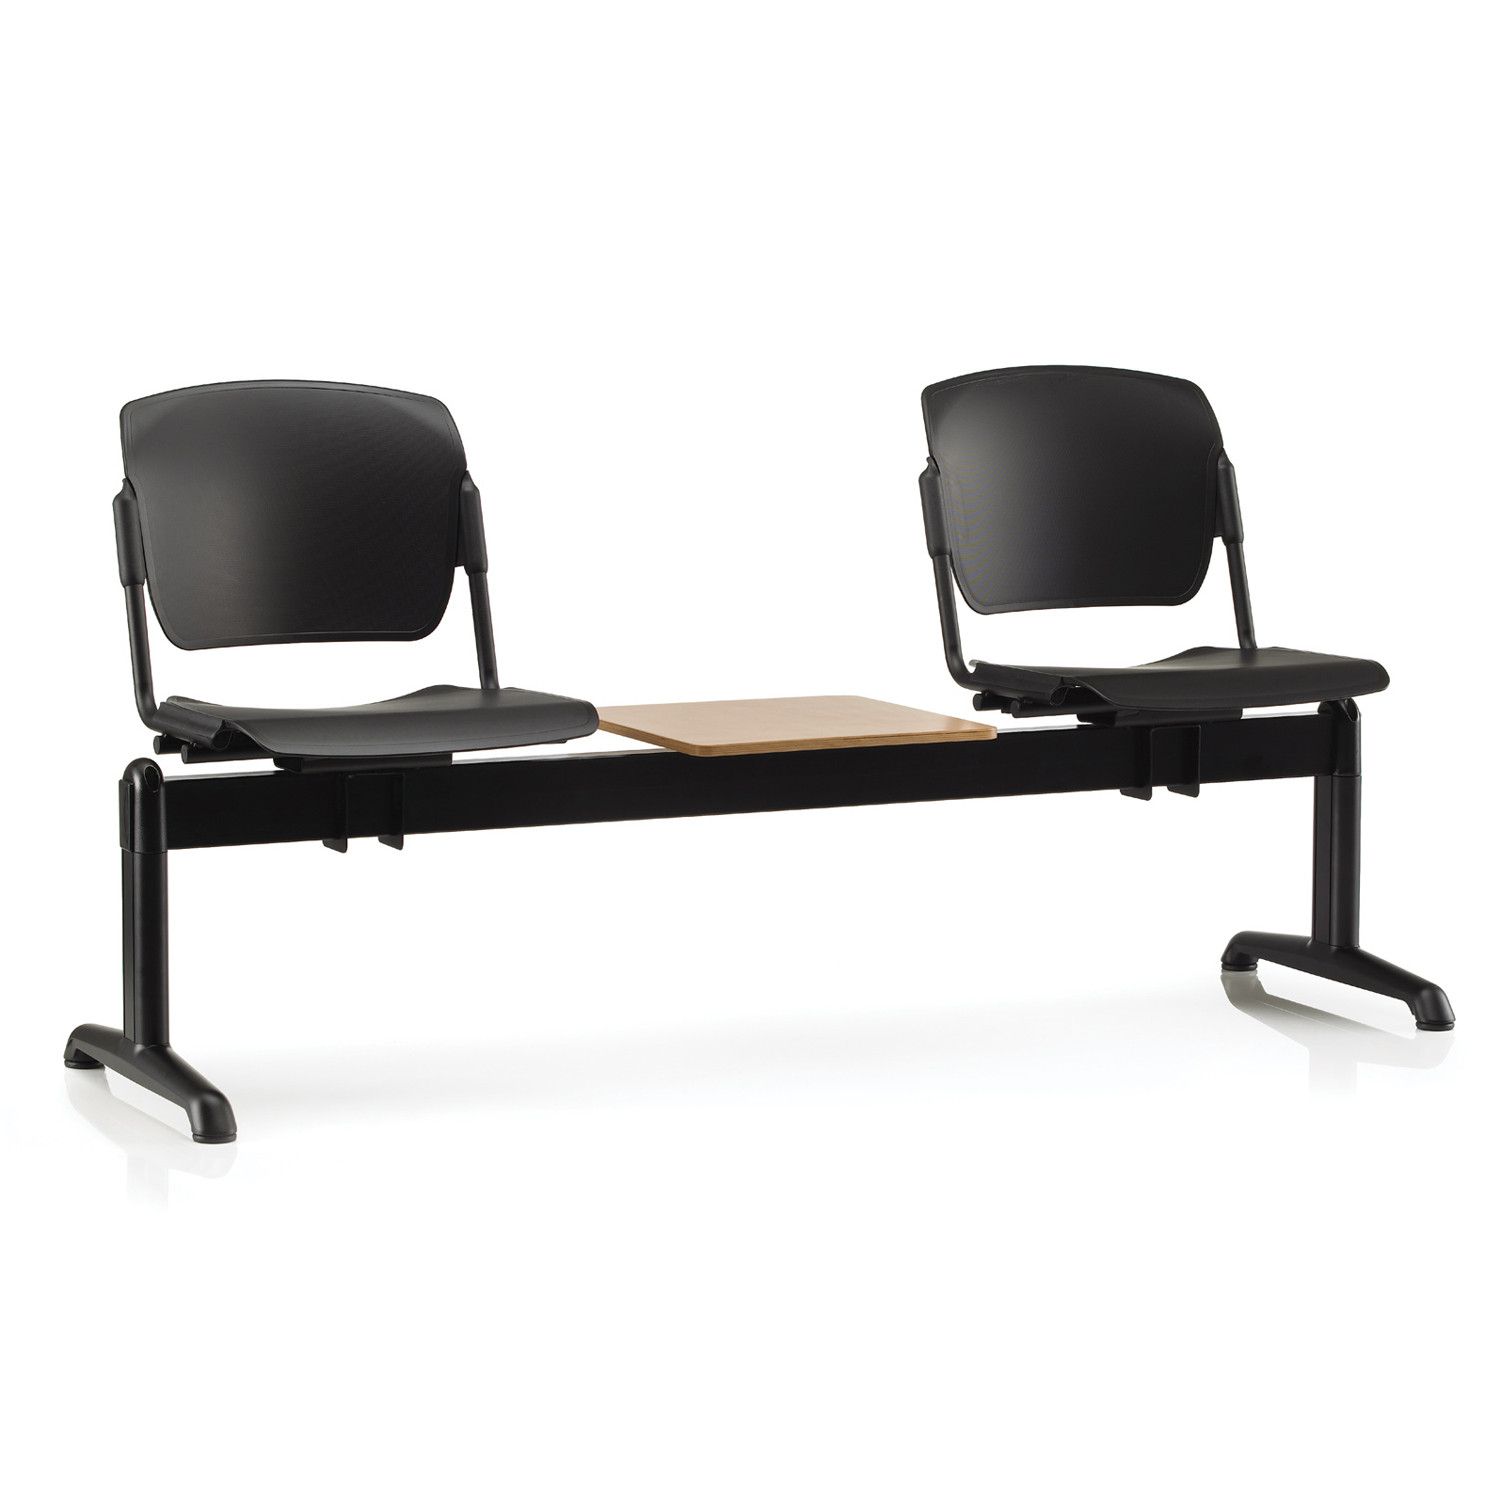 Series 8100 Beam Seating by Pledge